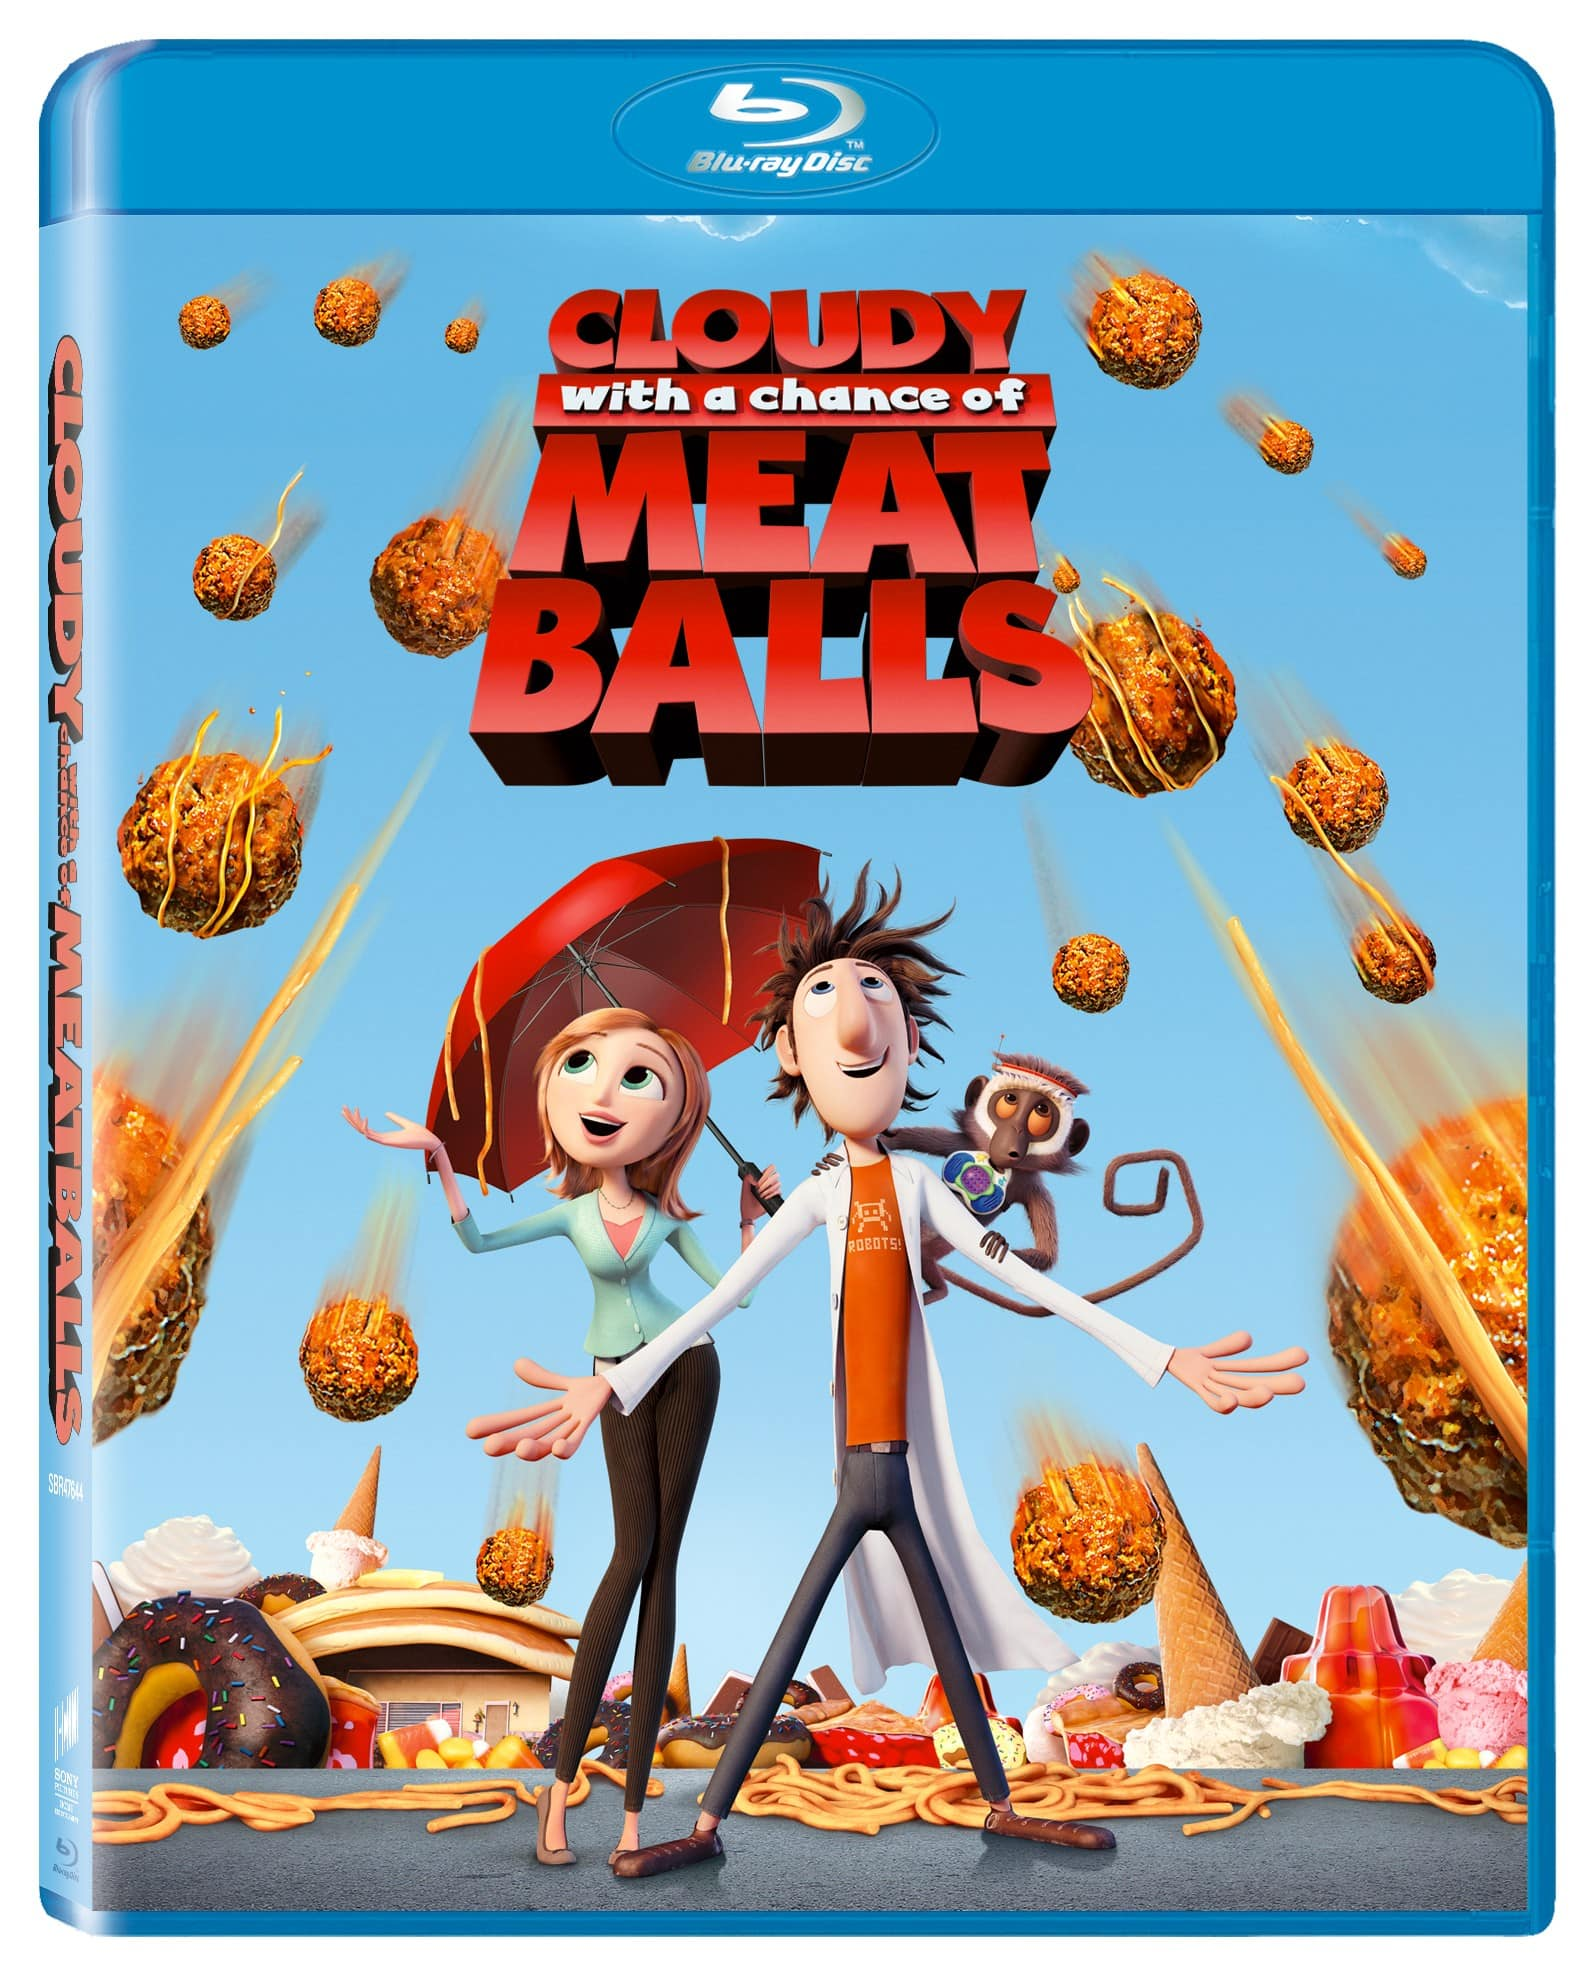 Select Blu-Ray Movies (Cloudy with a Chance of Meatballs, & More) - $5 + Free Shipping over $25